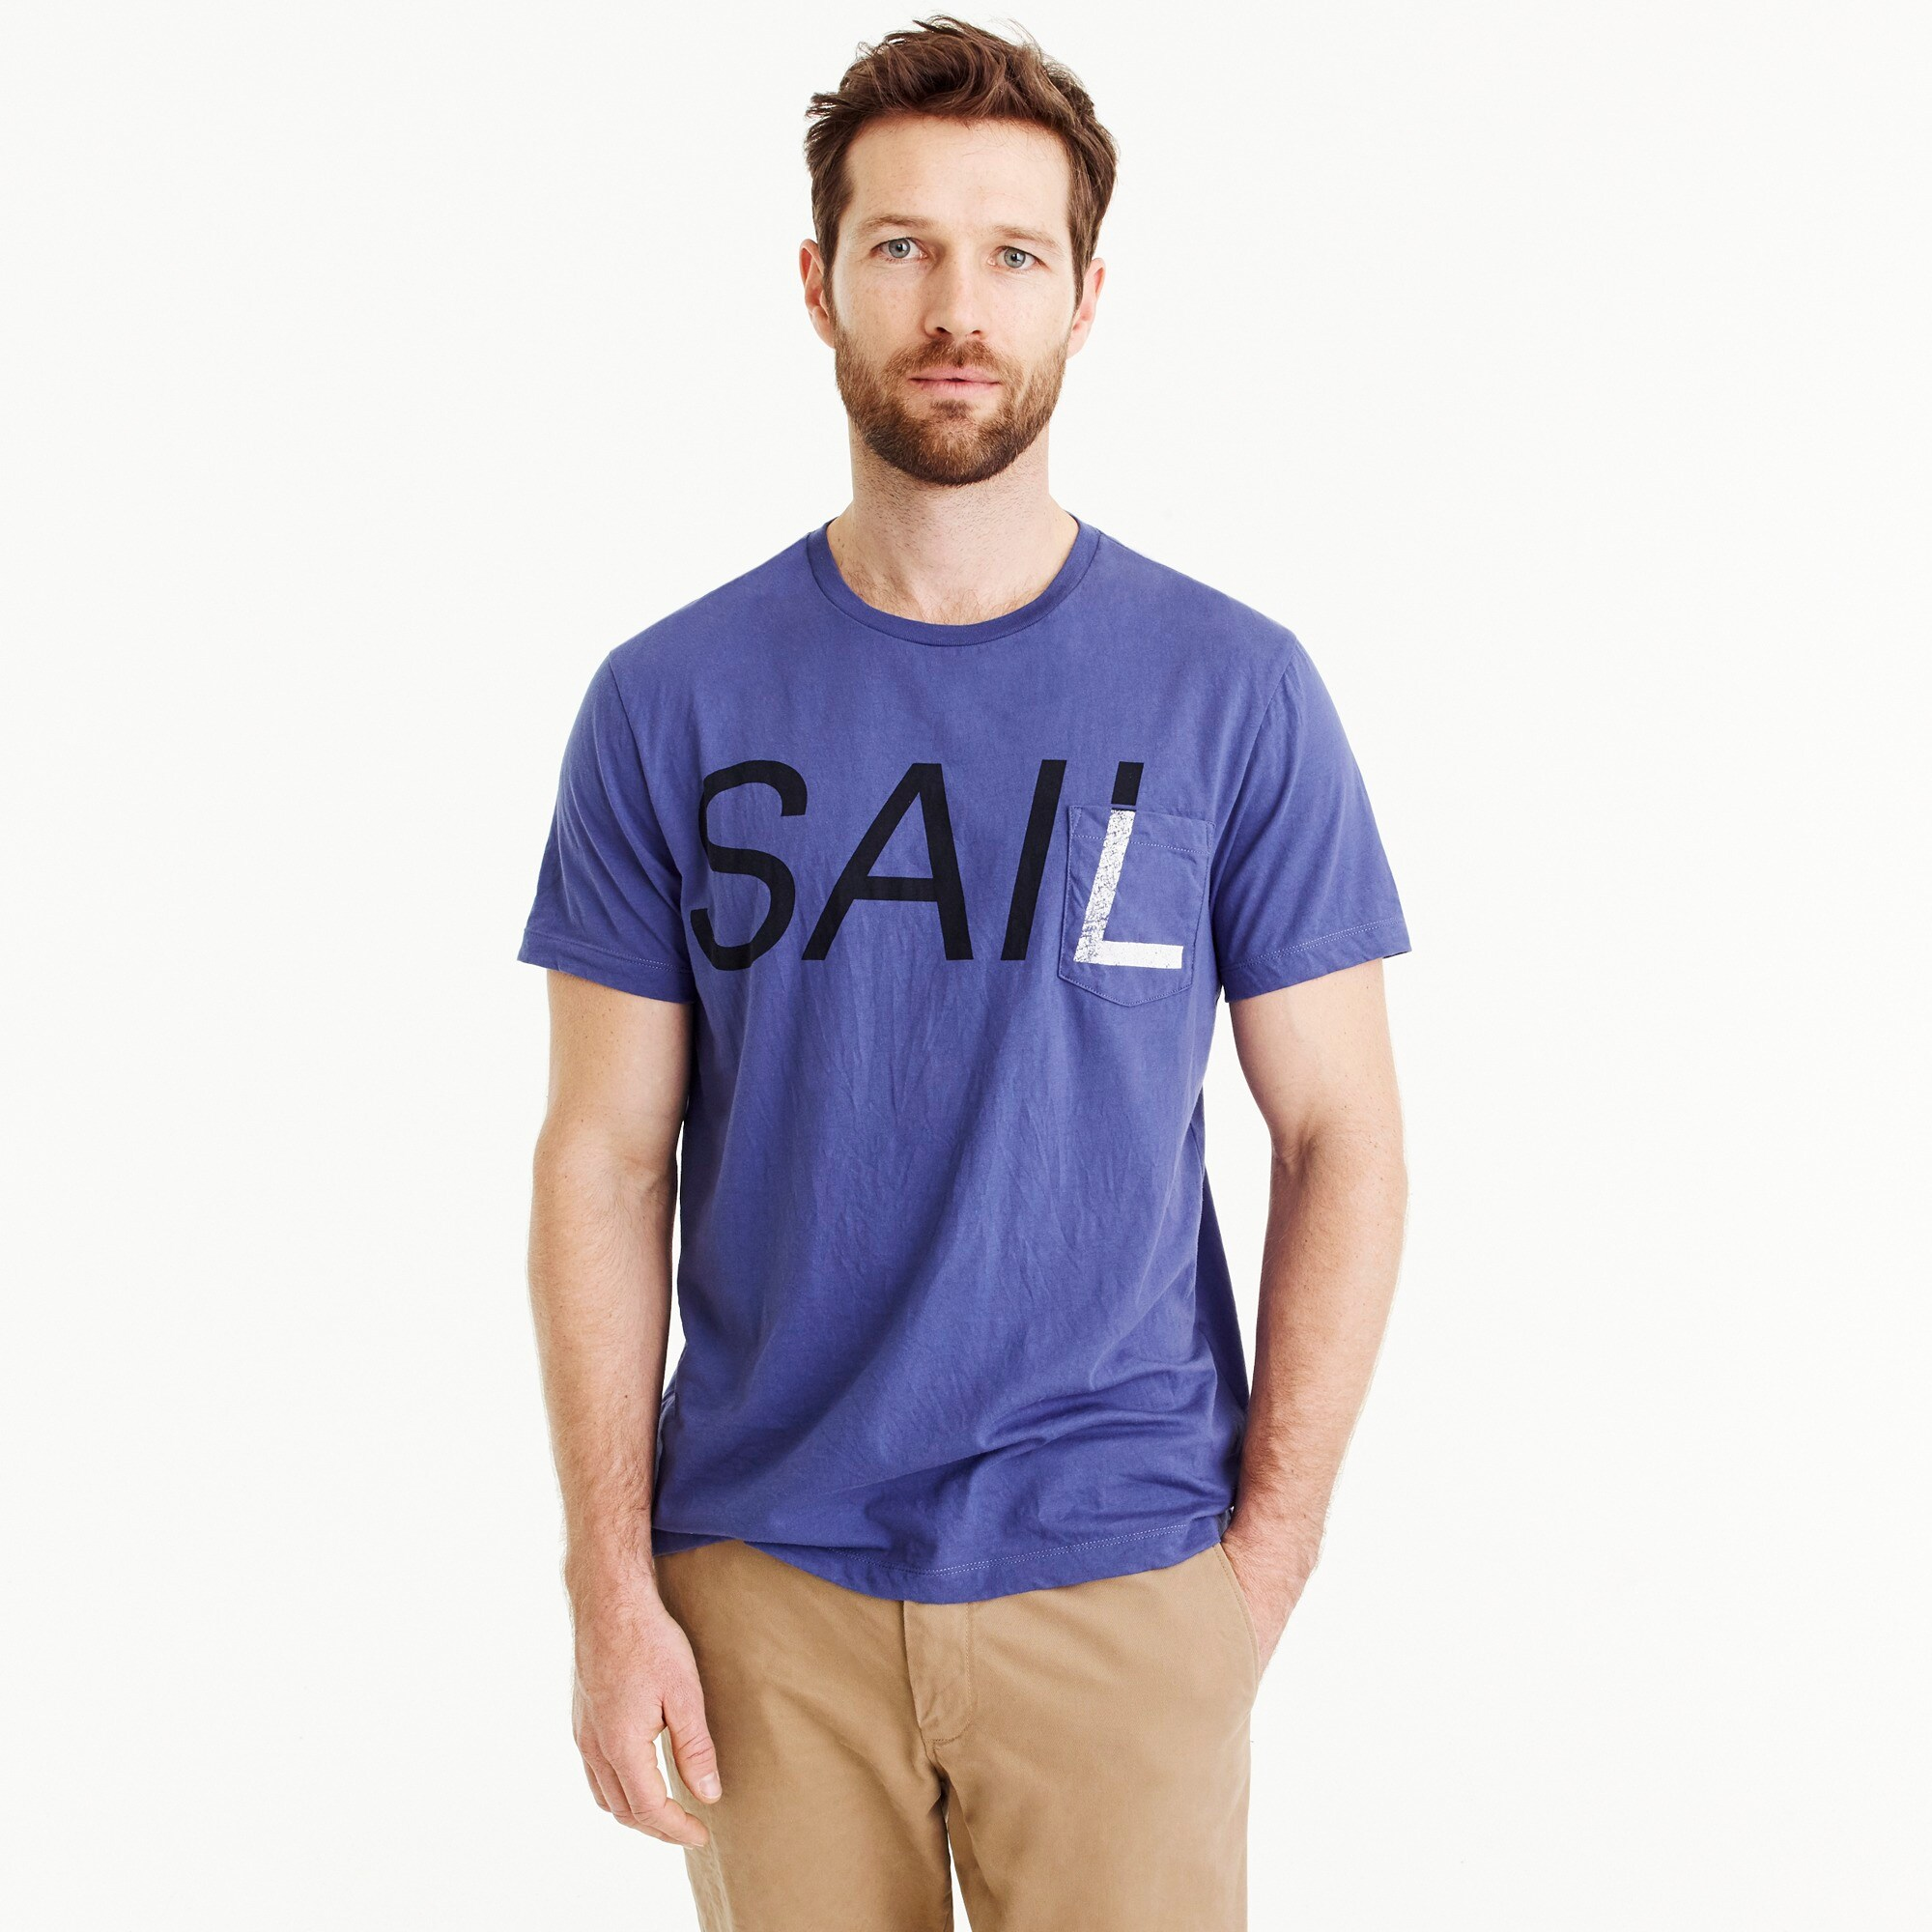 Image 1 for Tall J.Crew Mercantile Broken-in T-shirt in sail graphic